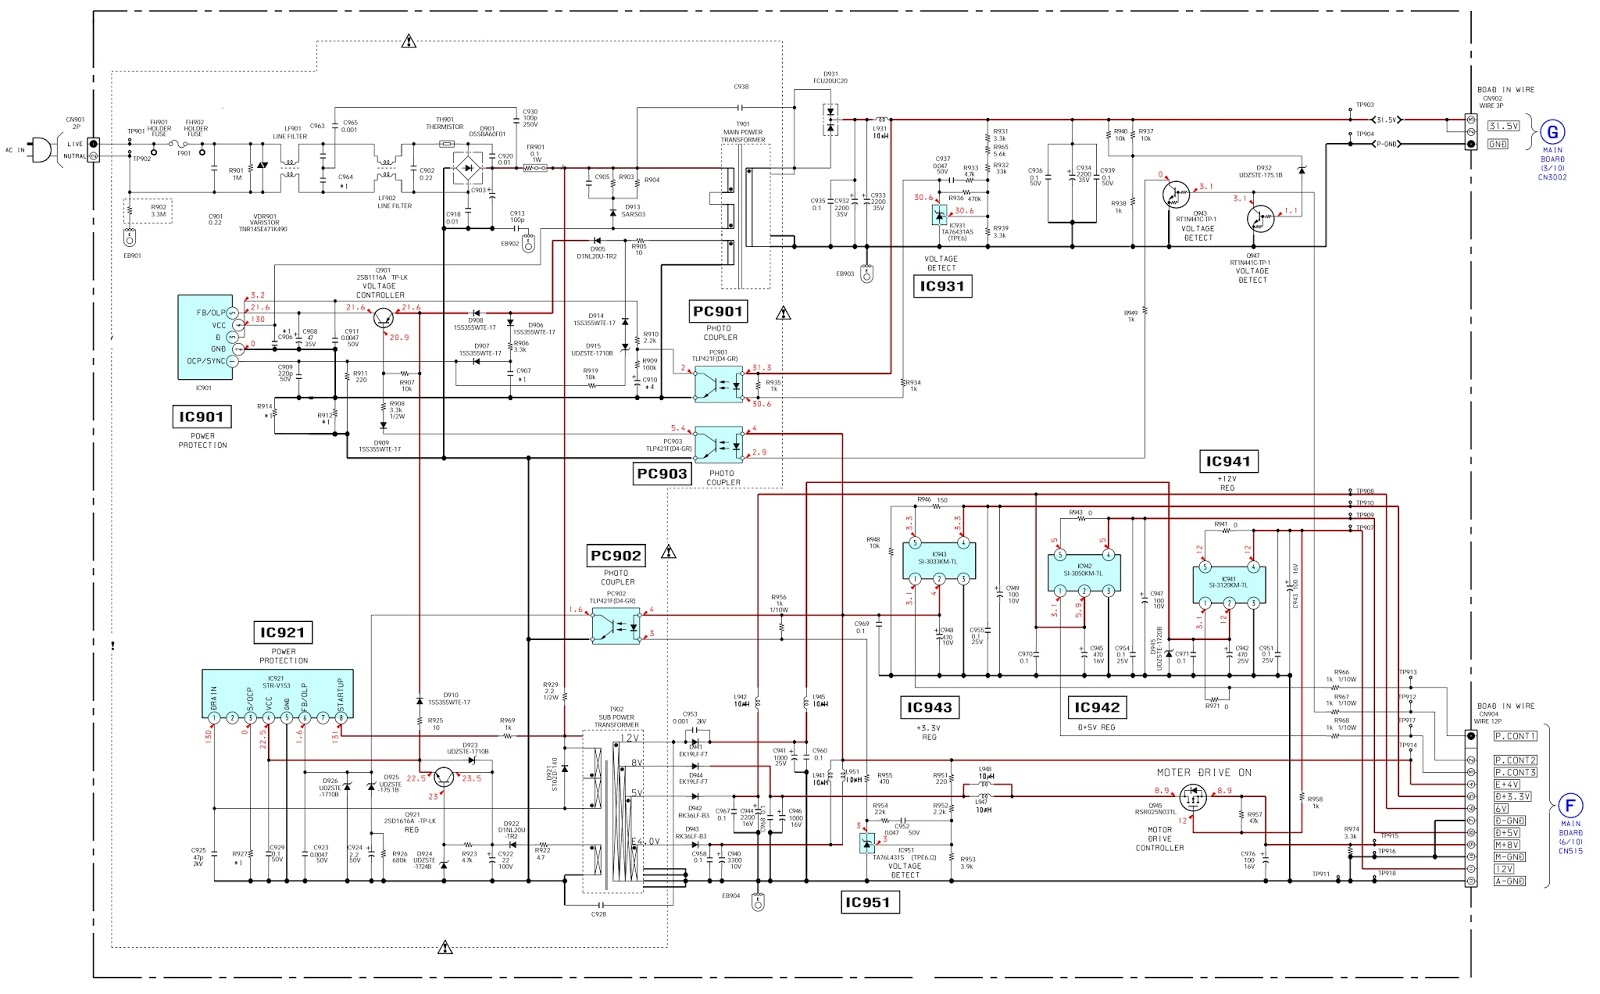 7 1 Home Theater Circuit Diagram 2002 Ford Escape Engine Sony Dav Dz120k Main Power Smps Schematic